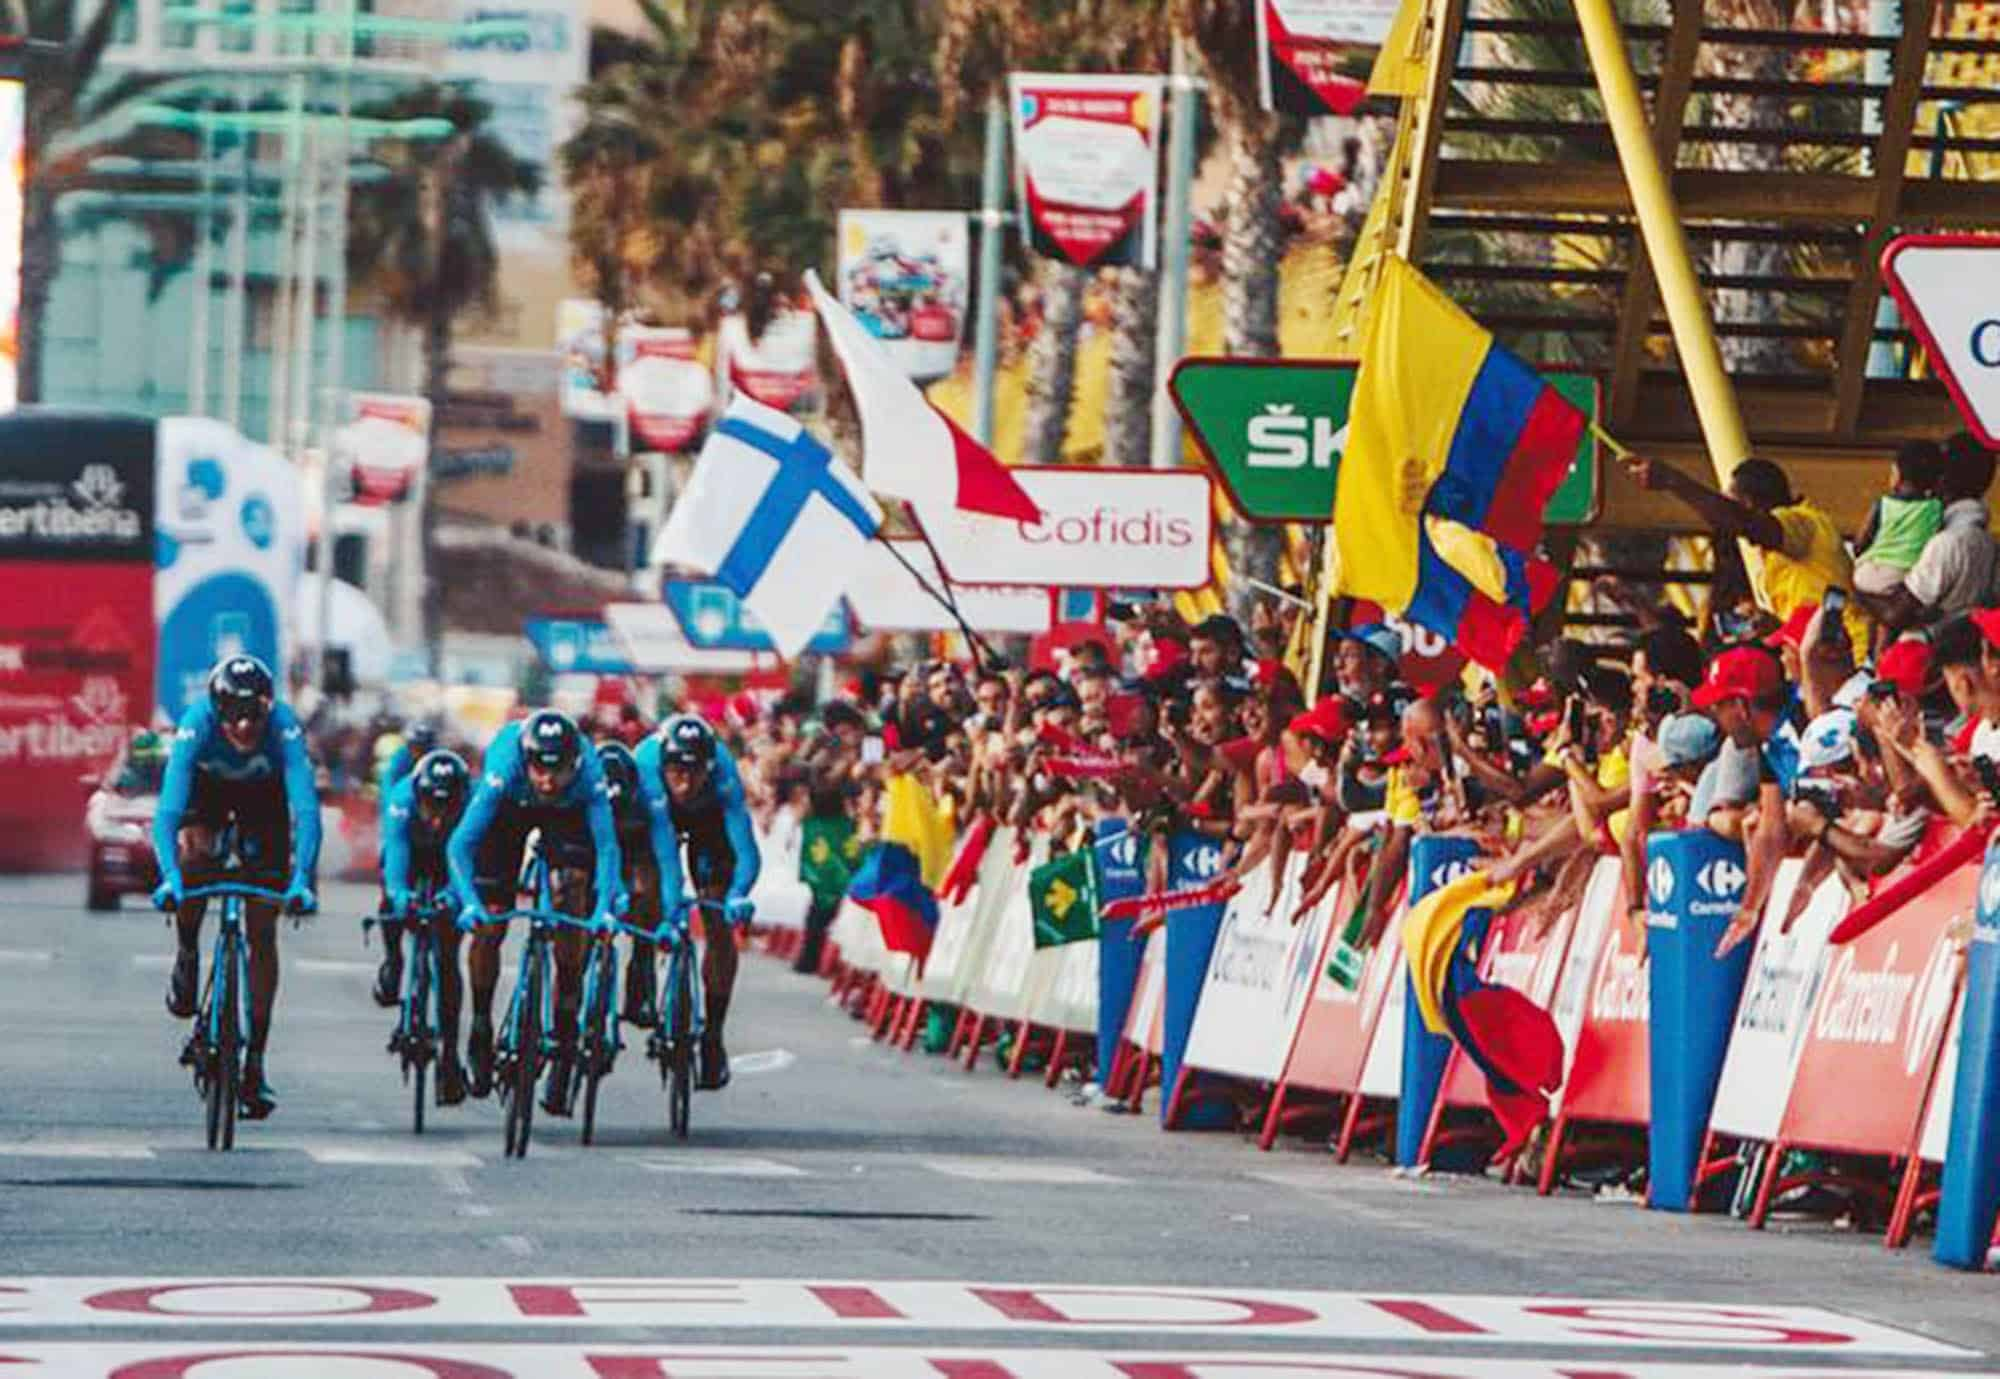 Columbia's Miguel Angel Lopez became the first rider to claim the leader's red jersey at La Vuelta 19 after his Astana Pro Team dominated the opening team time trial on Saturday evening.